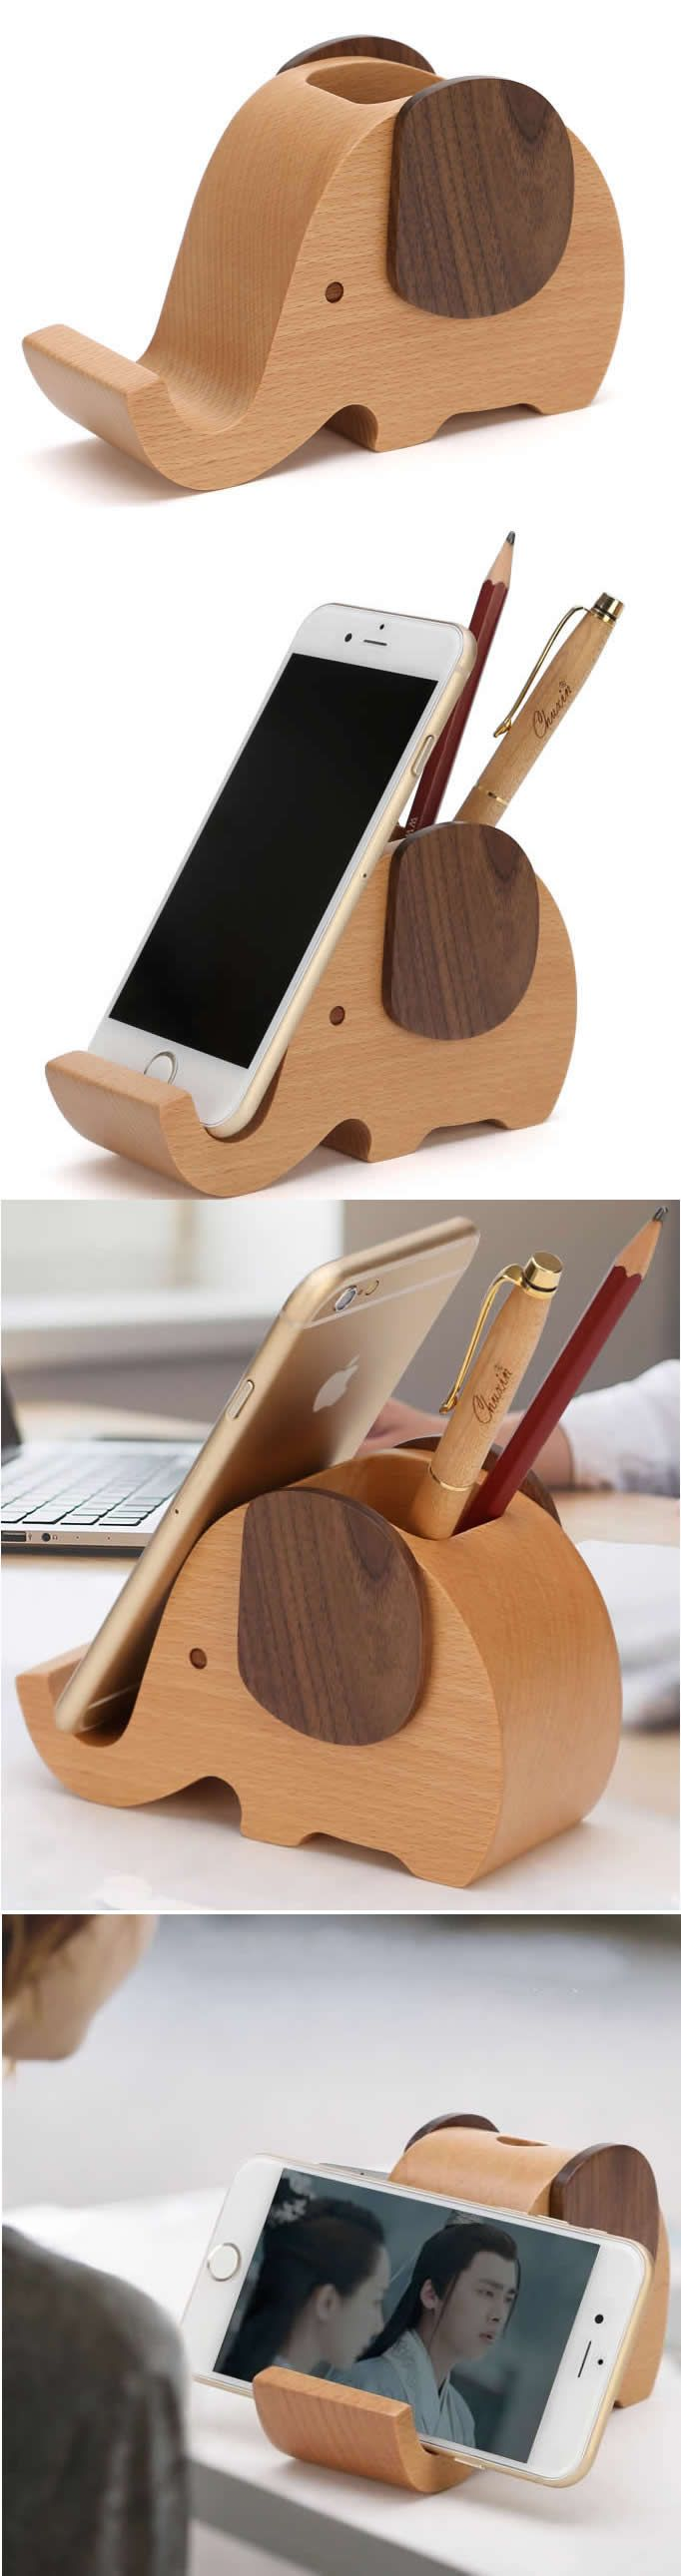 Phone Stand Designs : Best ideas about phone stand on pinterest